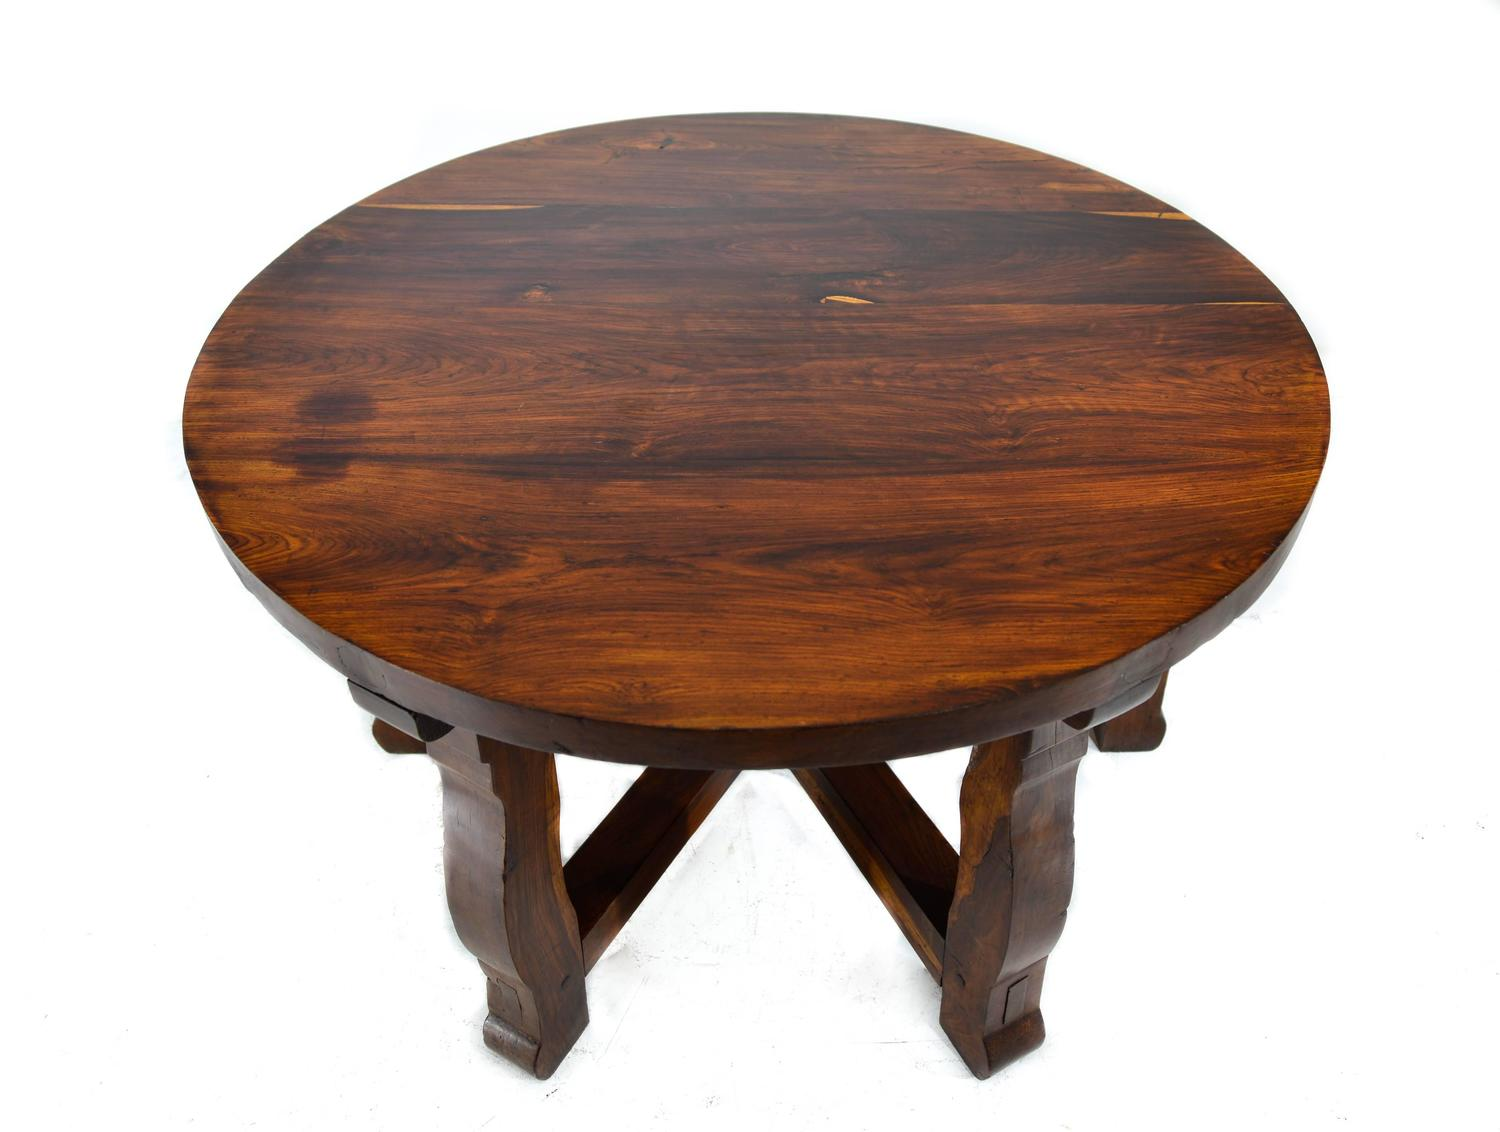 j a meza tropical wood round table for sale at 1stdibs. Black Bedroom Furniture Sets. Home Design Ideas